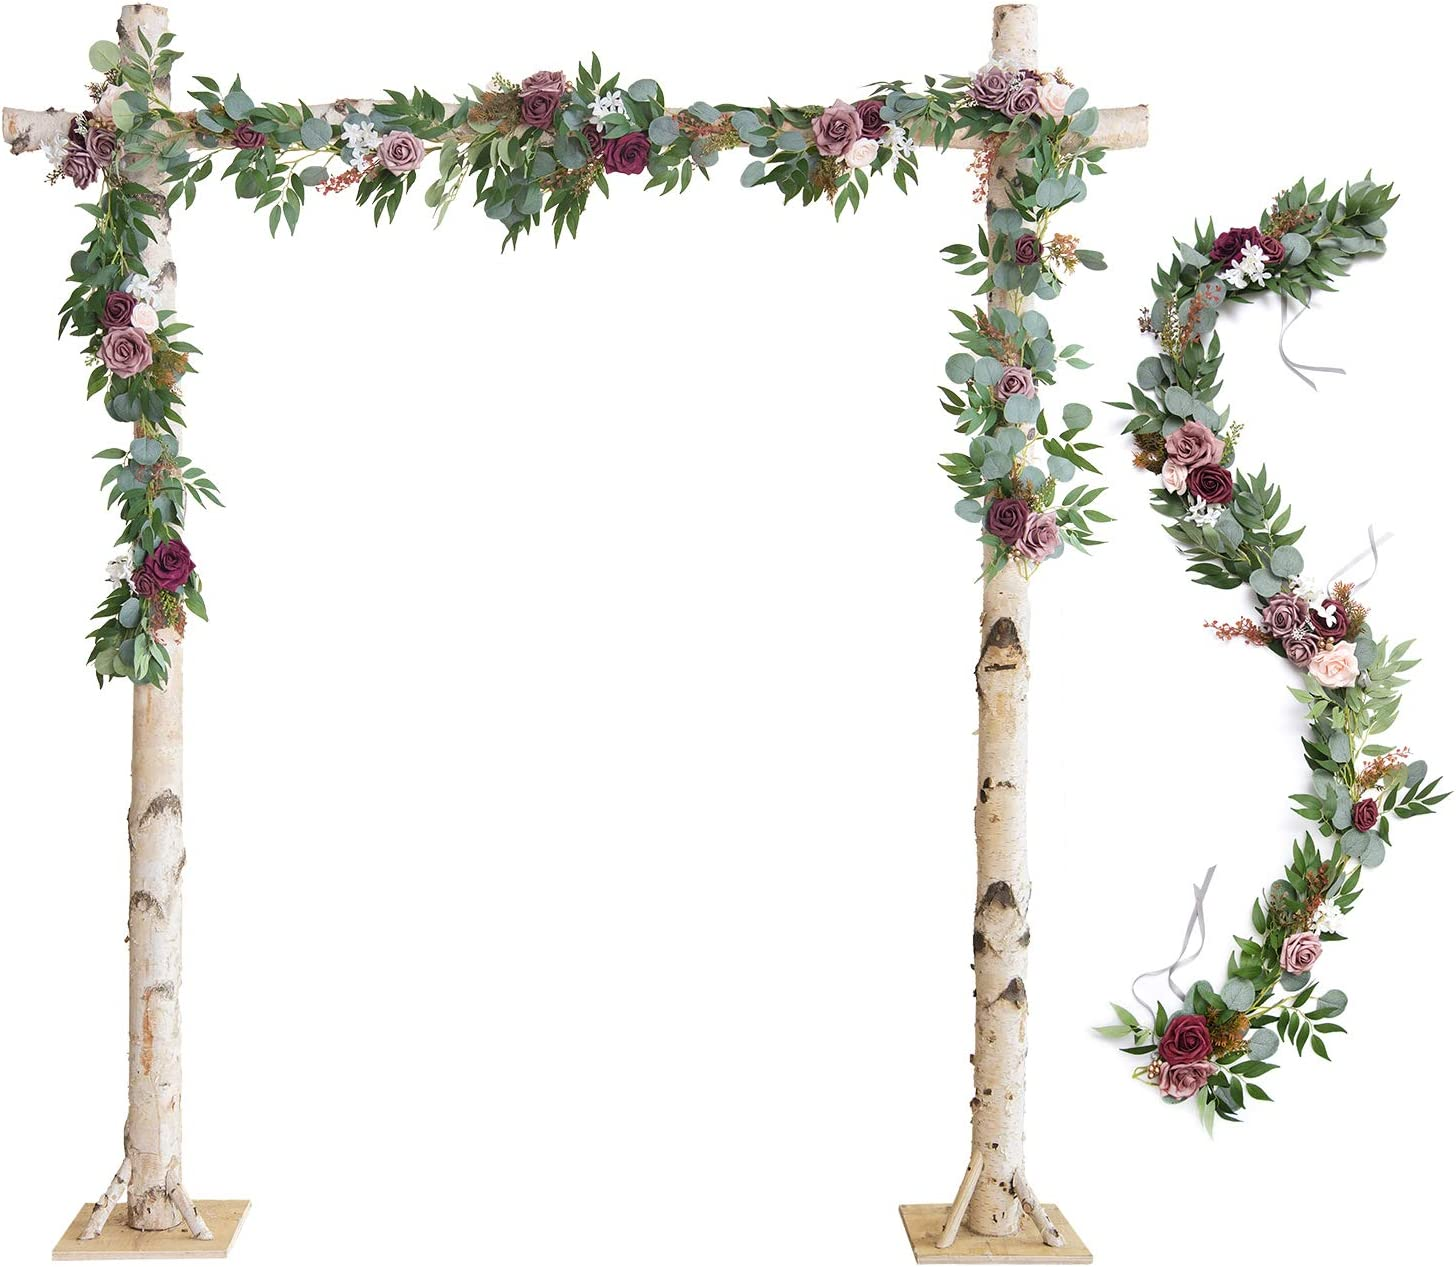 Ling's moment Wedding Arch Decor Flowers 2 Rows 6.5ft Burgundy Flower Garlands for Wedding Backdrop Ceremony Decorations